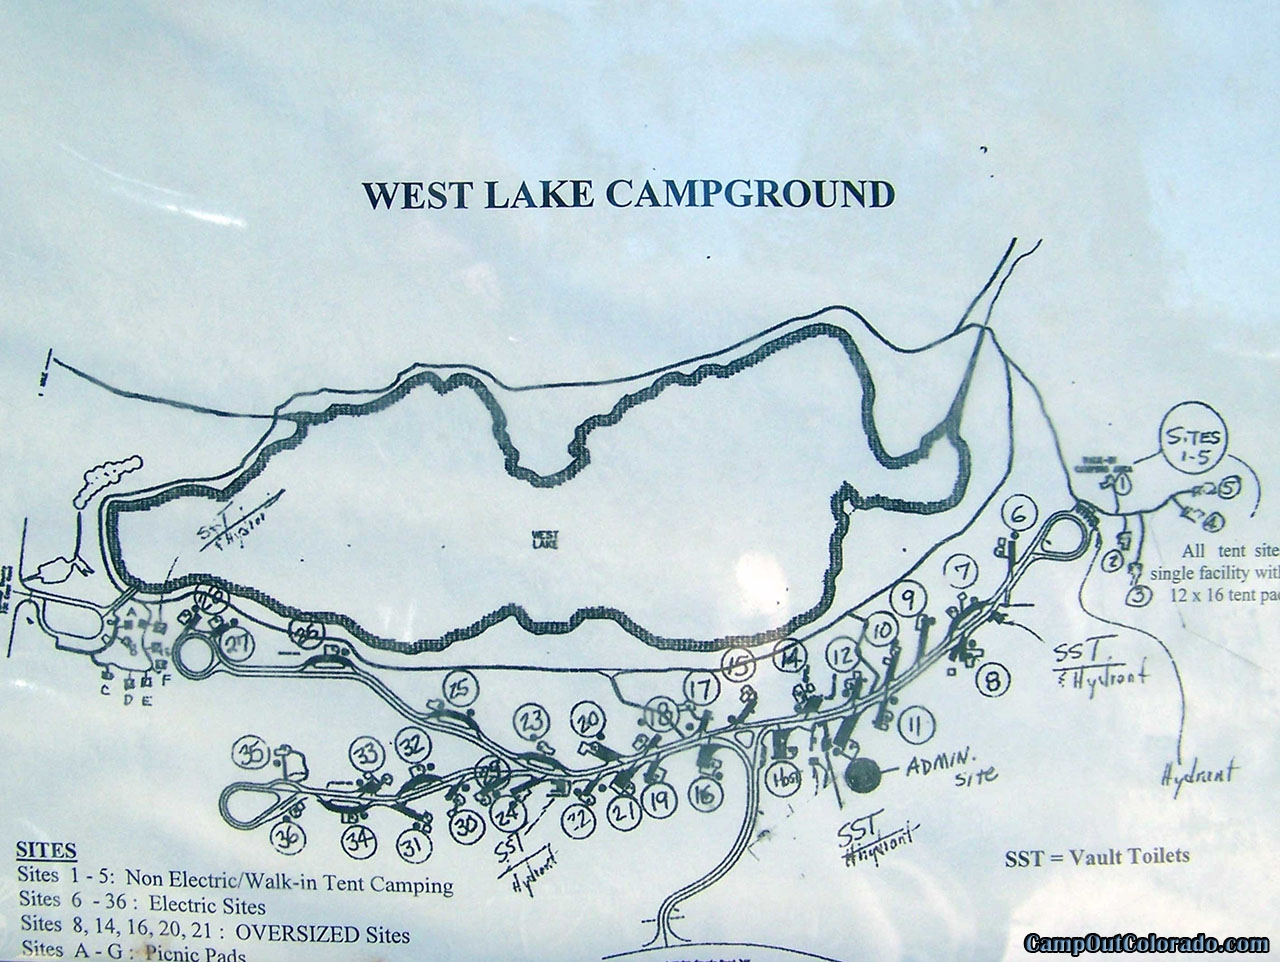 campoutcolorado-west-lake-map